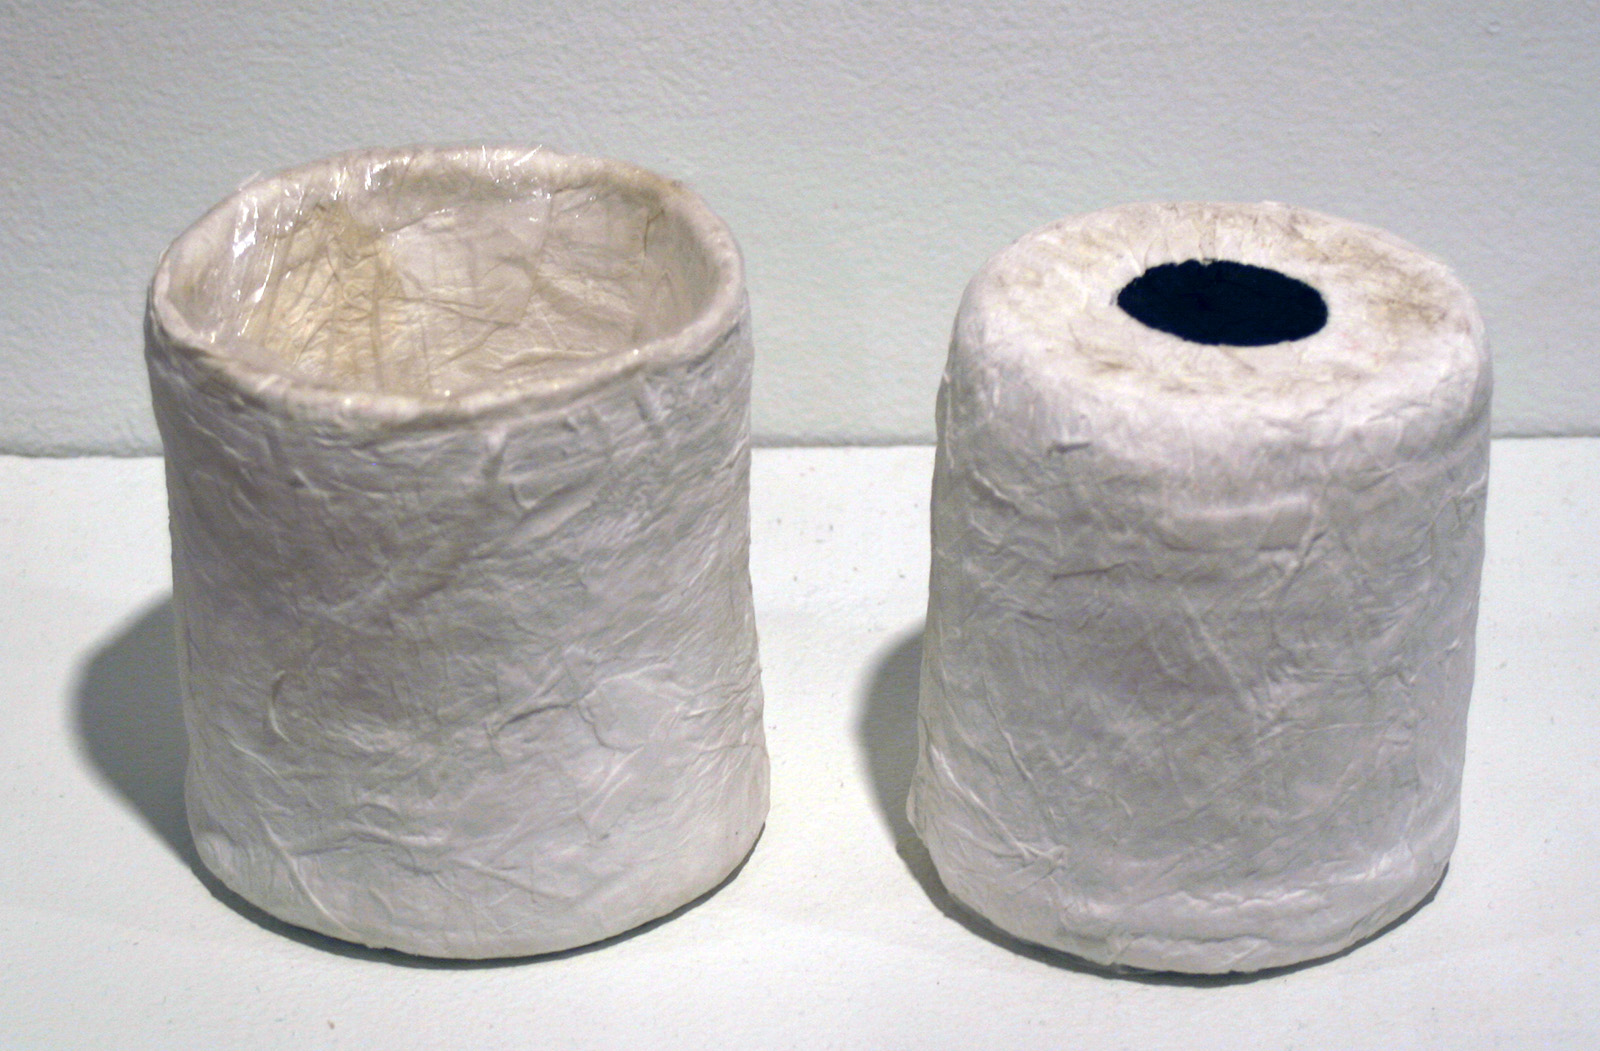 Paper maché drinking cup disguised as a roll of toilet paper